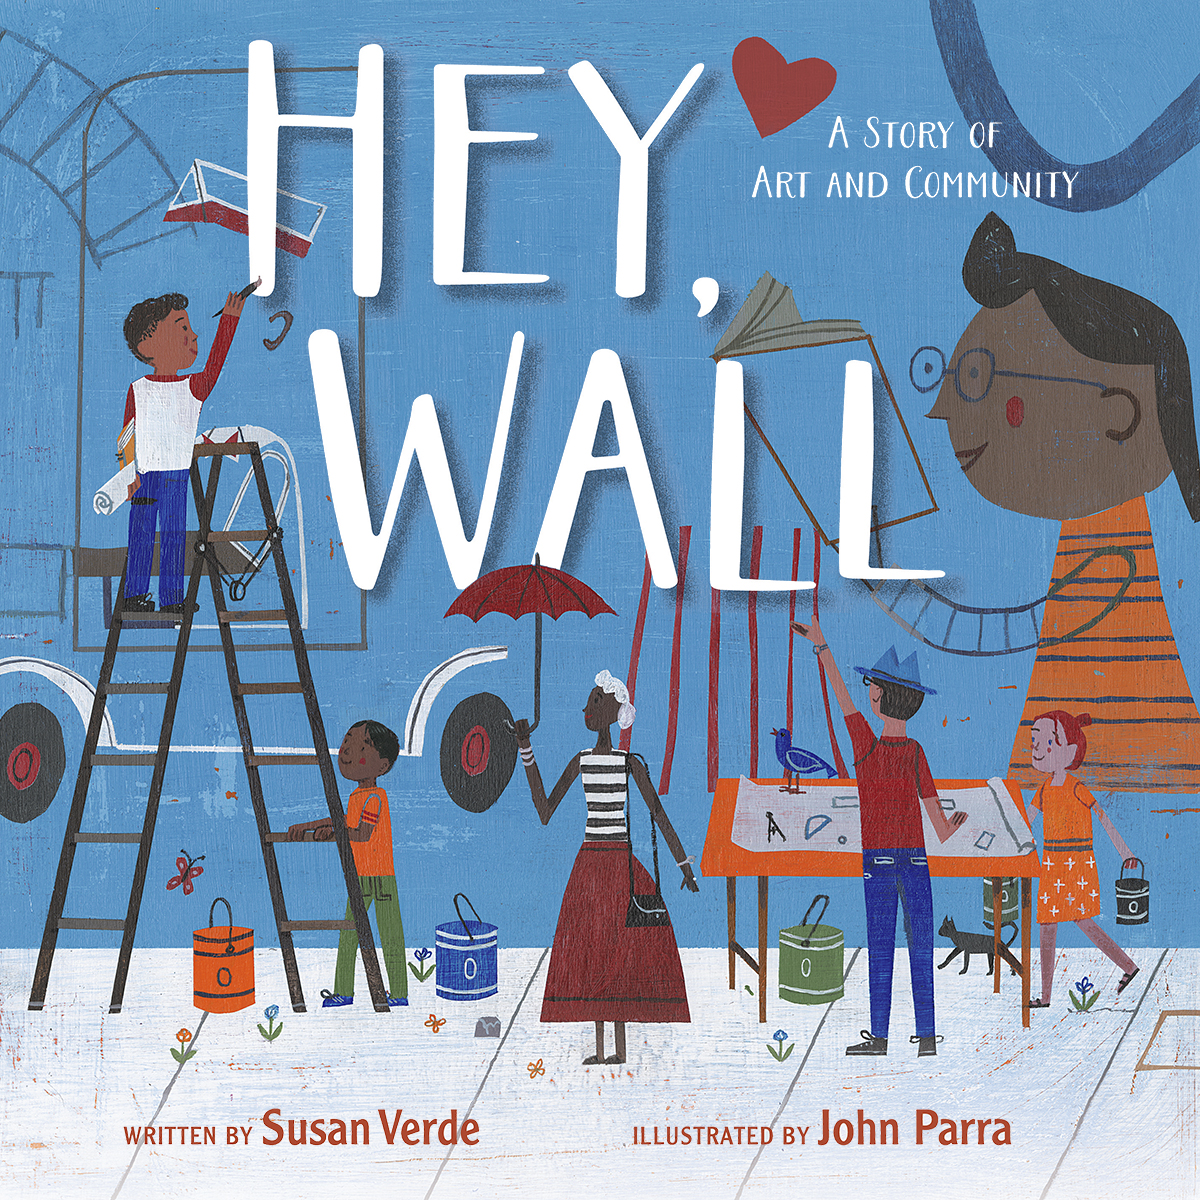 0_hey_wall_art_community_cover